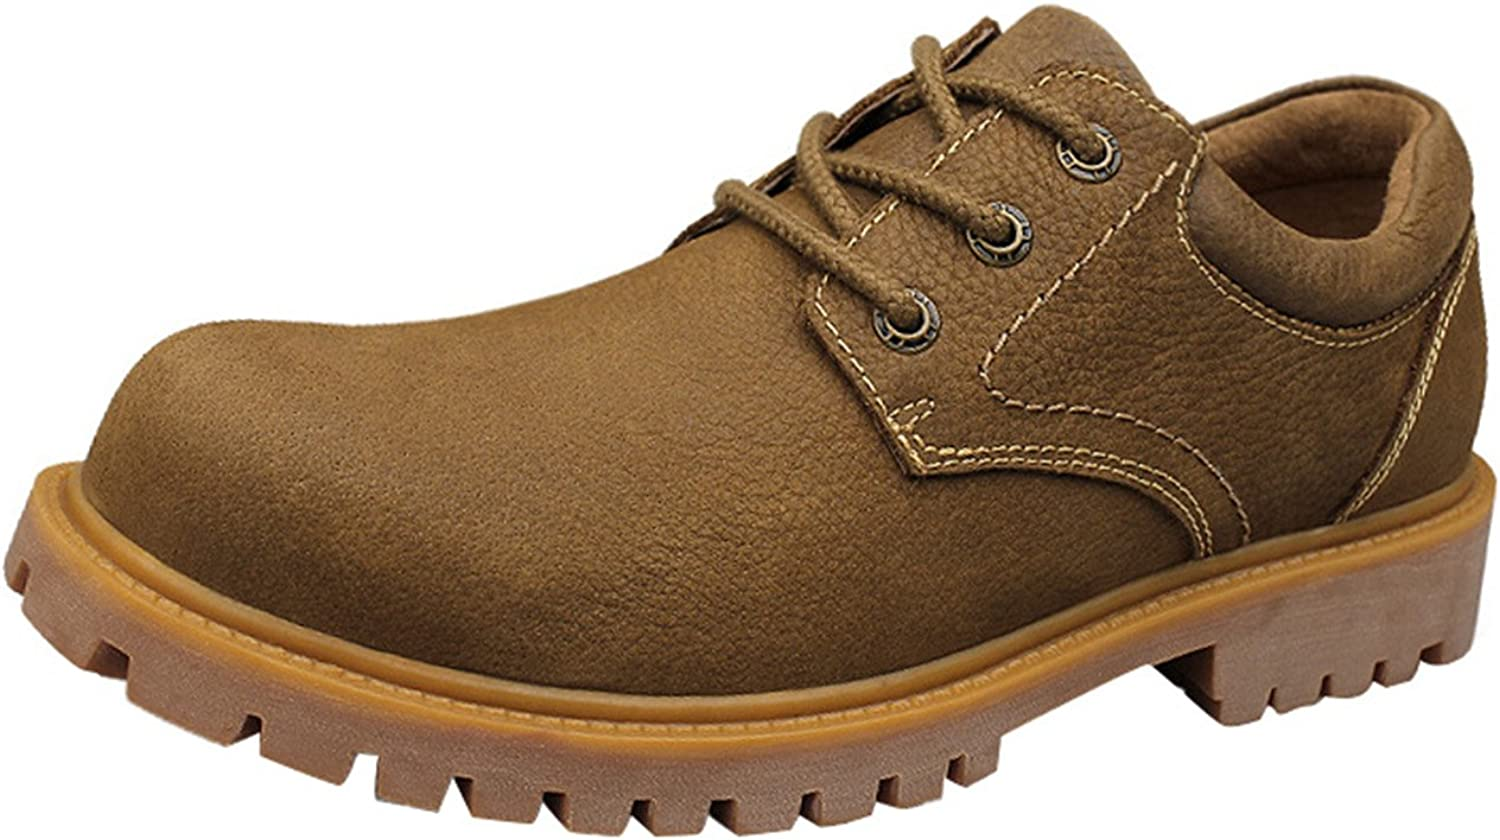 LIVEINU Men's Shelter Plain-Toe Oxford Leater shoes